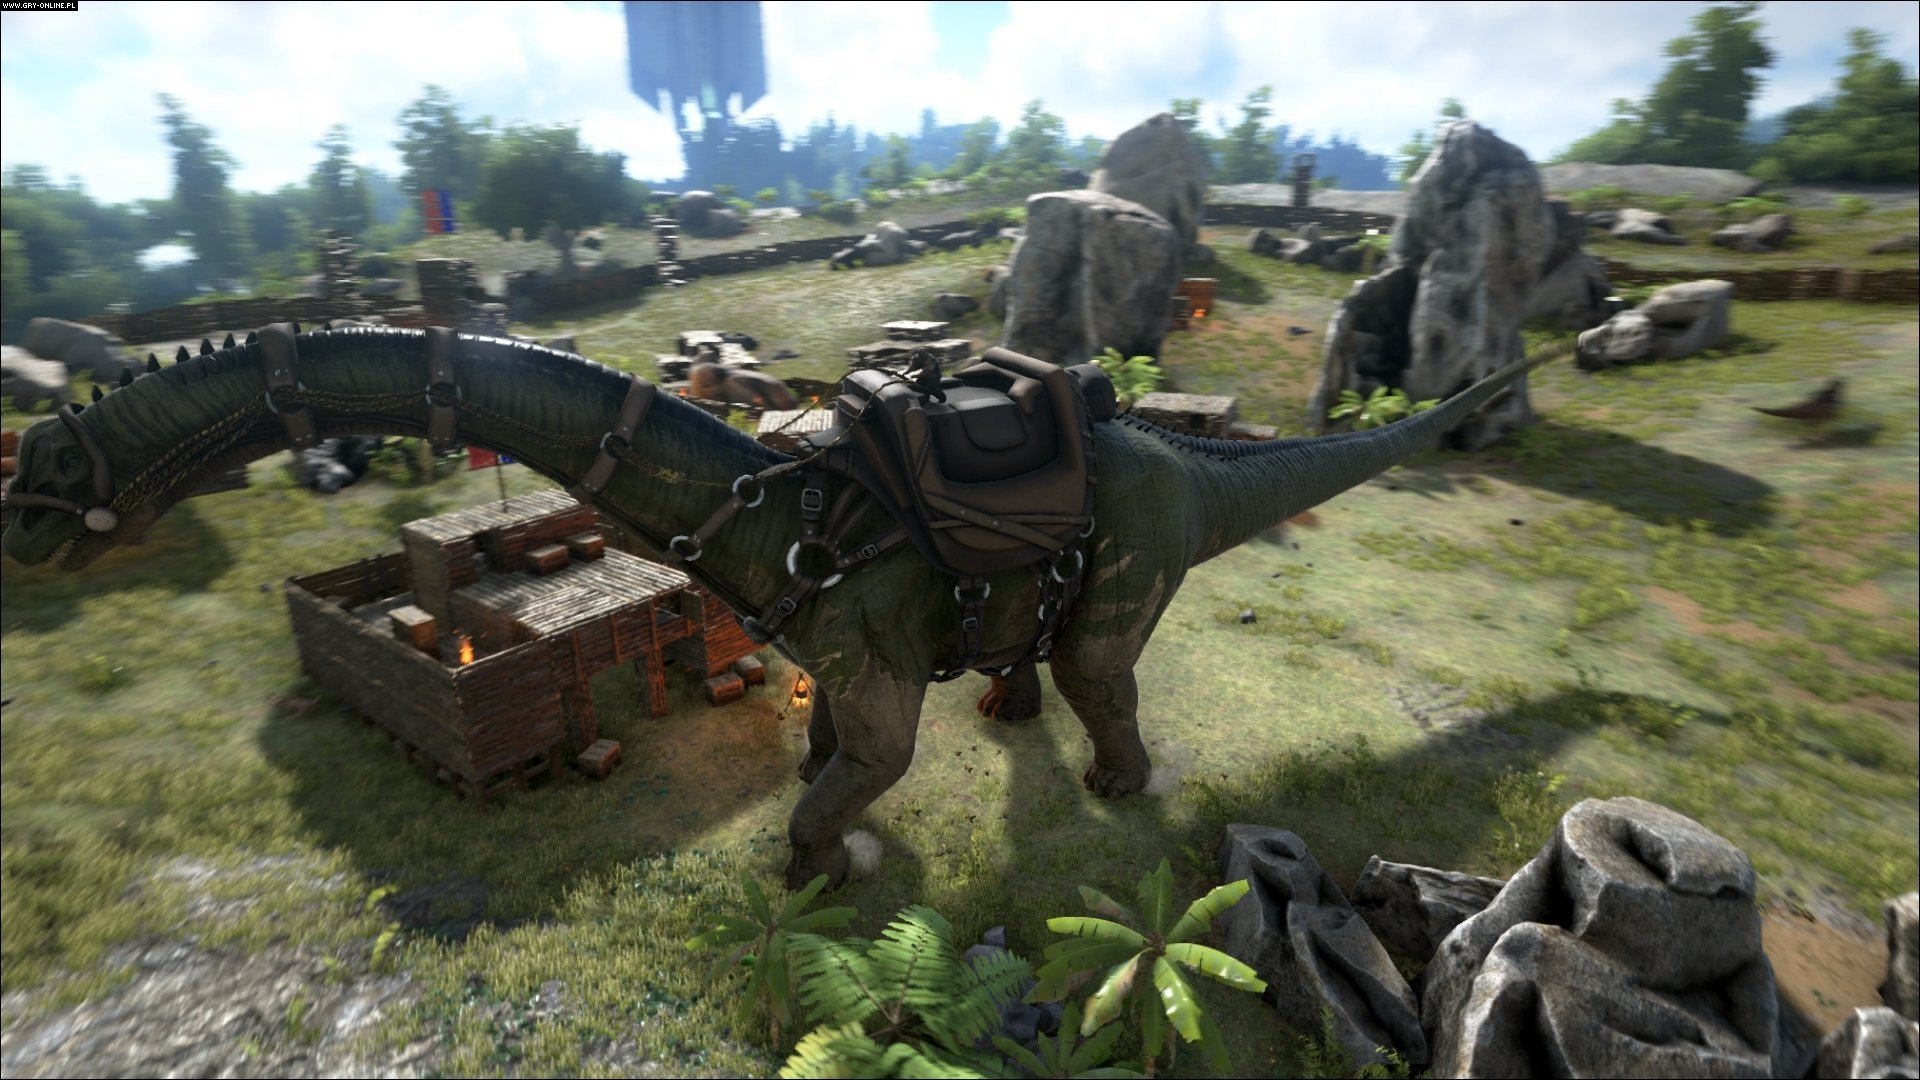 ARK: Survival Evolved PC, PS4, XONE Gry Screen 143/148, Studio Wildcard